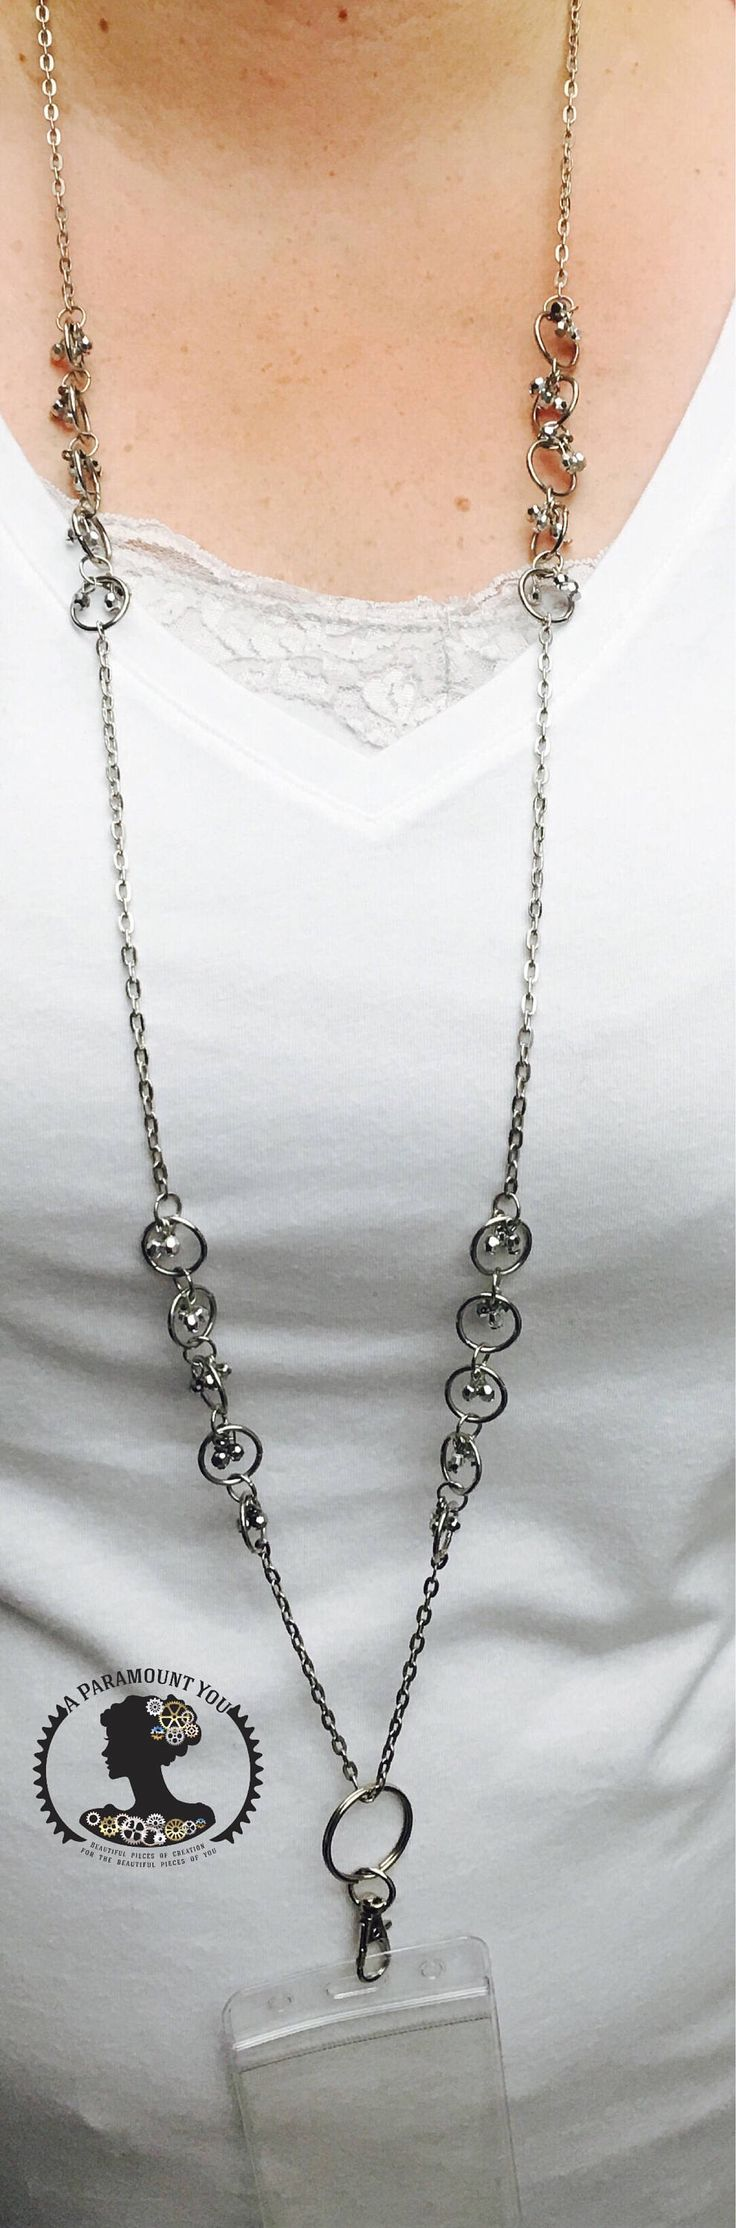 A personal favorite from my Etsy shop https://www.etsy.com/listing/541658059/metallic-fashion-lanyard-necklace-id